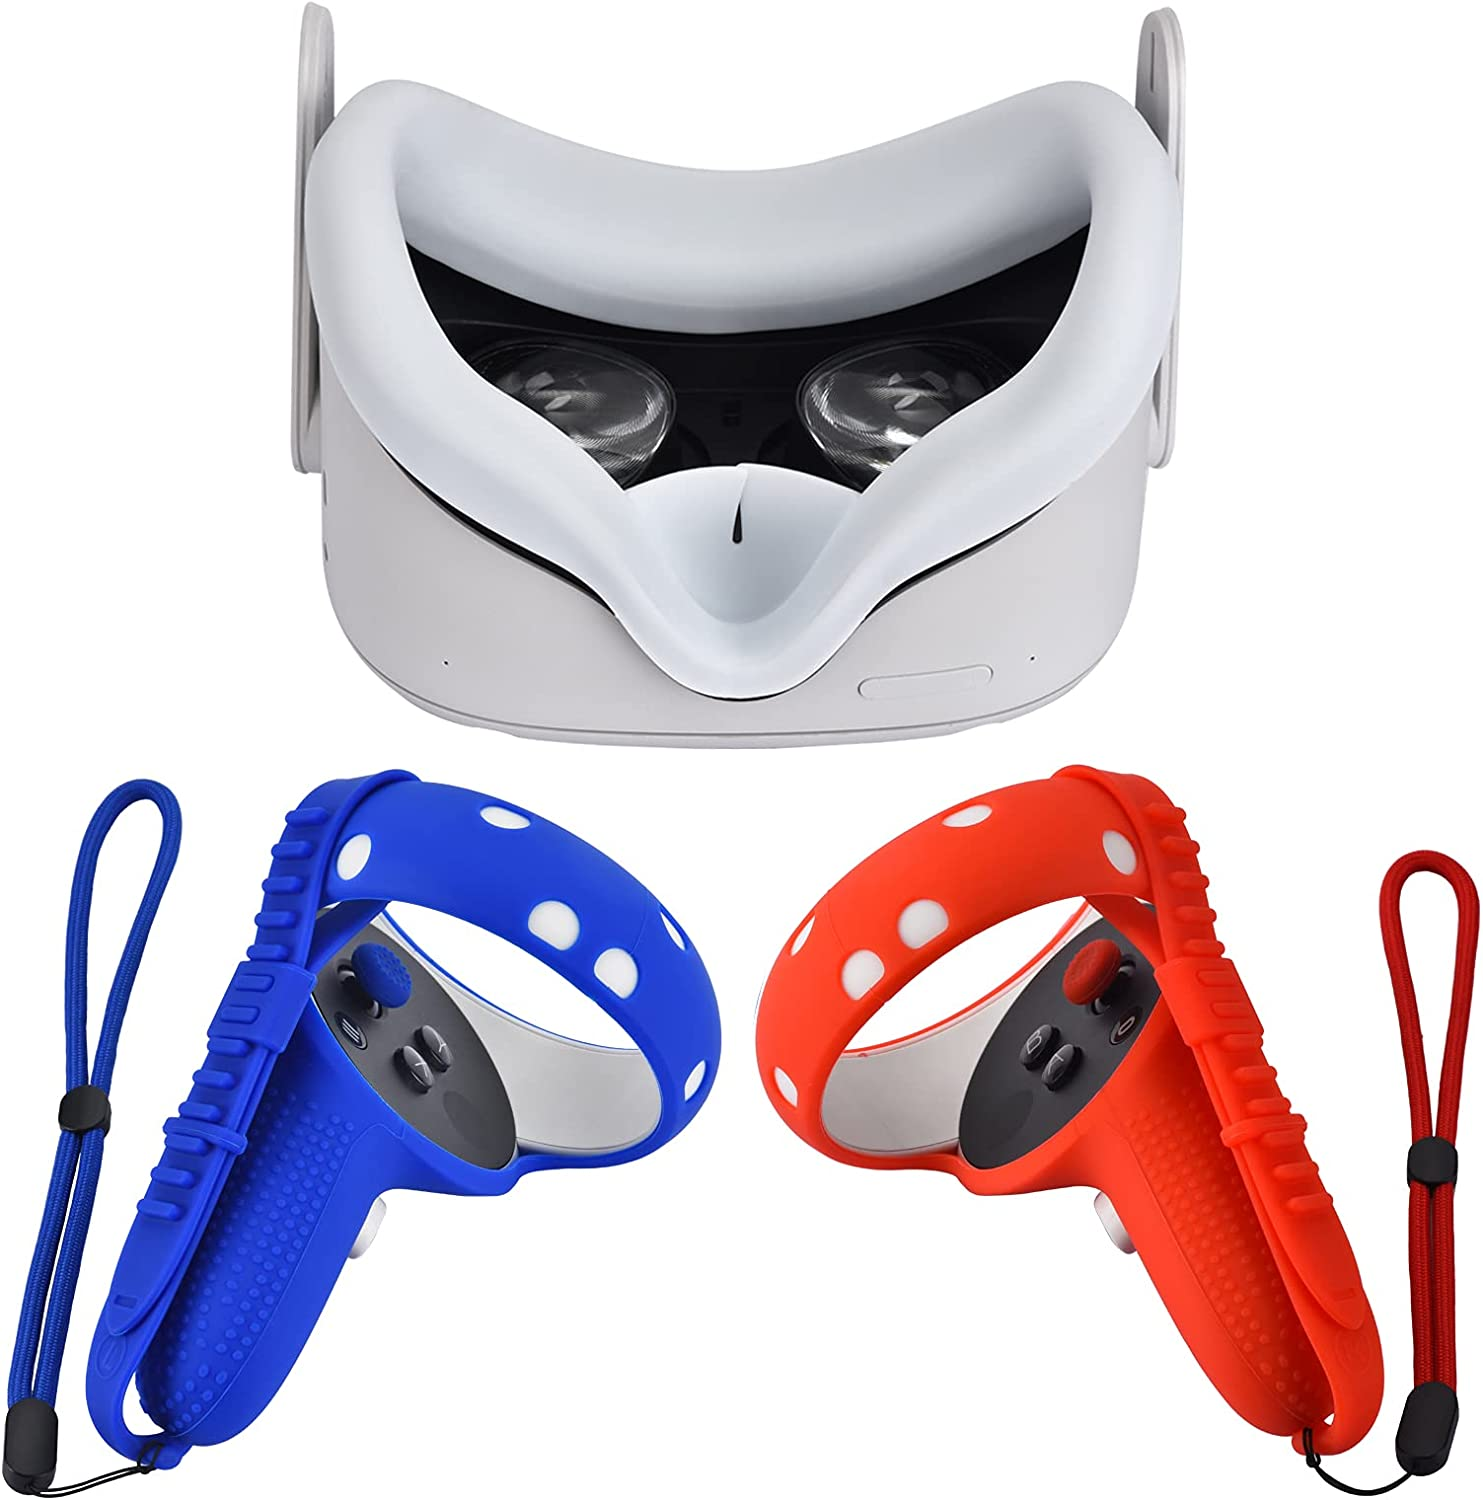 XIAOGE Silicone Controller Grip Cover for Oculus Quest 2 with Face Cover Combo, VR Headset Accessories Sweatproof Anti Collision (Blue Red White)